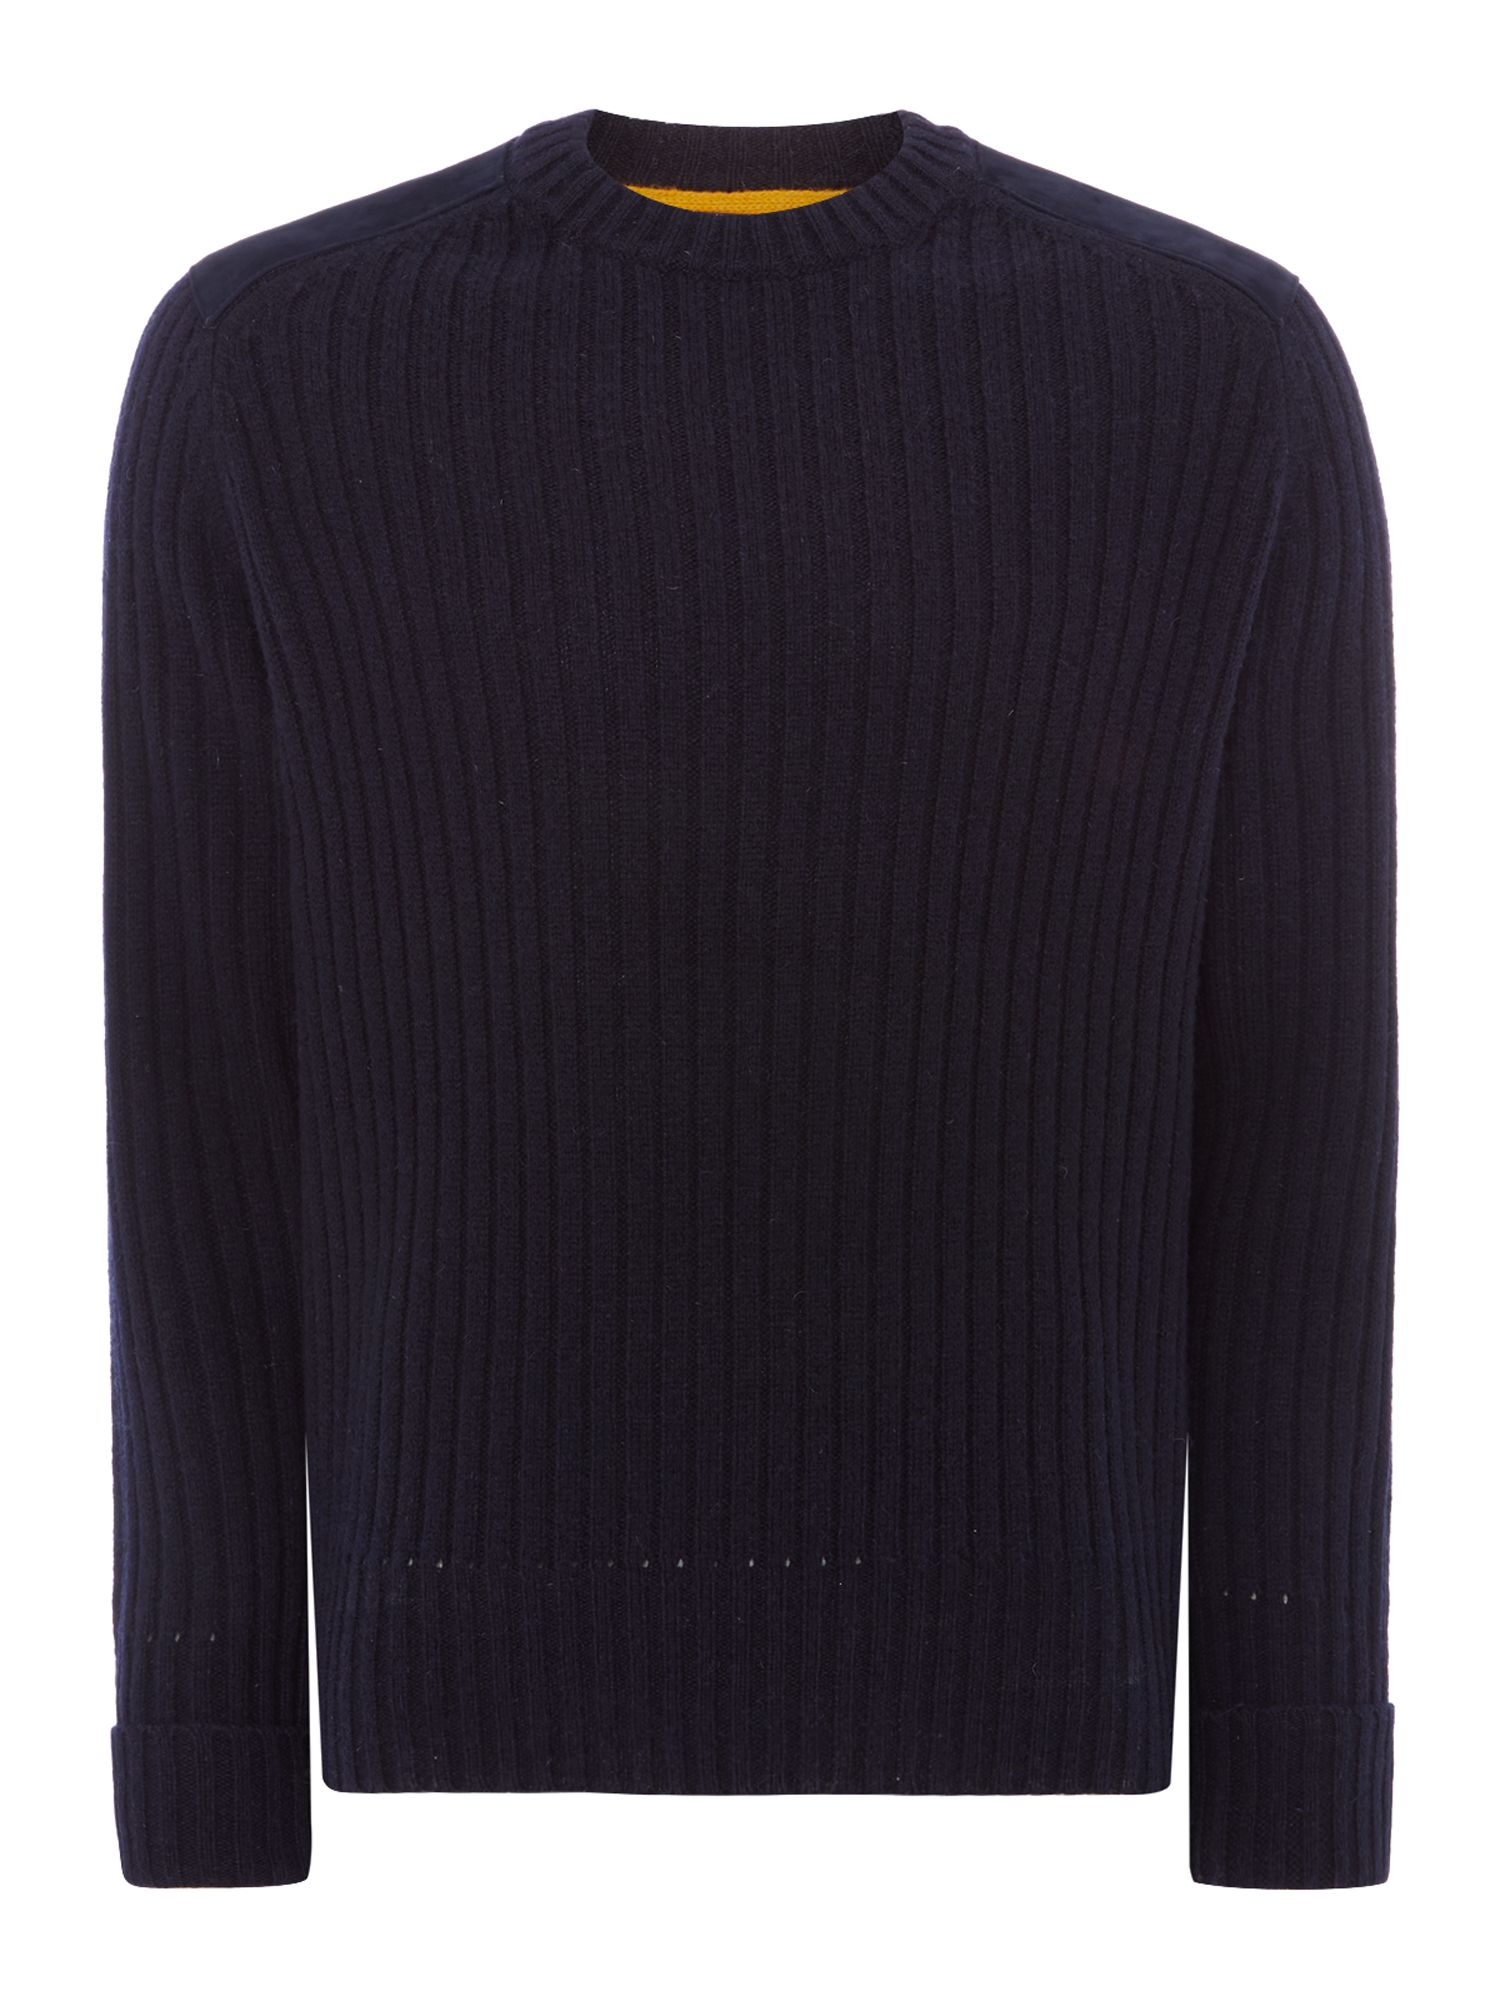 Men's Vintage Style Sweaters – 1920s to 1960s Mens PS By Paul Smith Suede shoulder detail knitted jumper Navy £119.00 AT vintagedancer.com